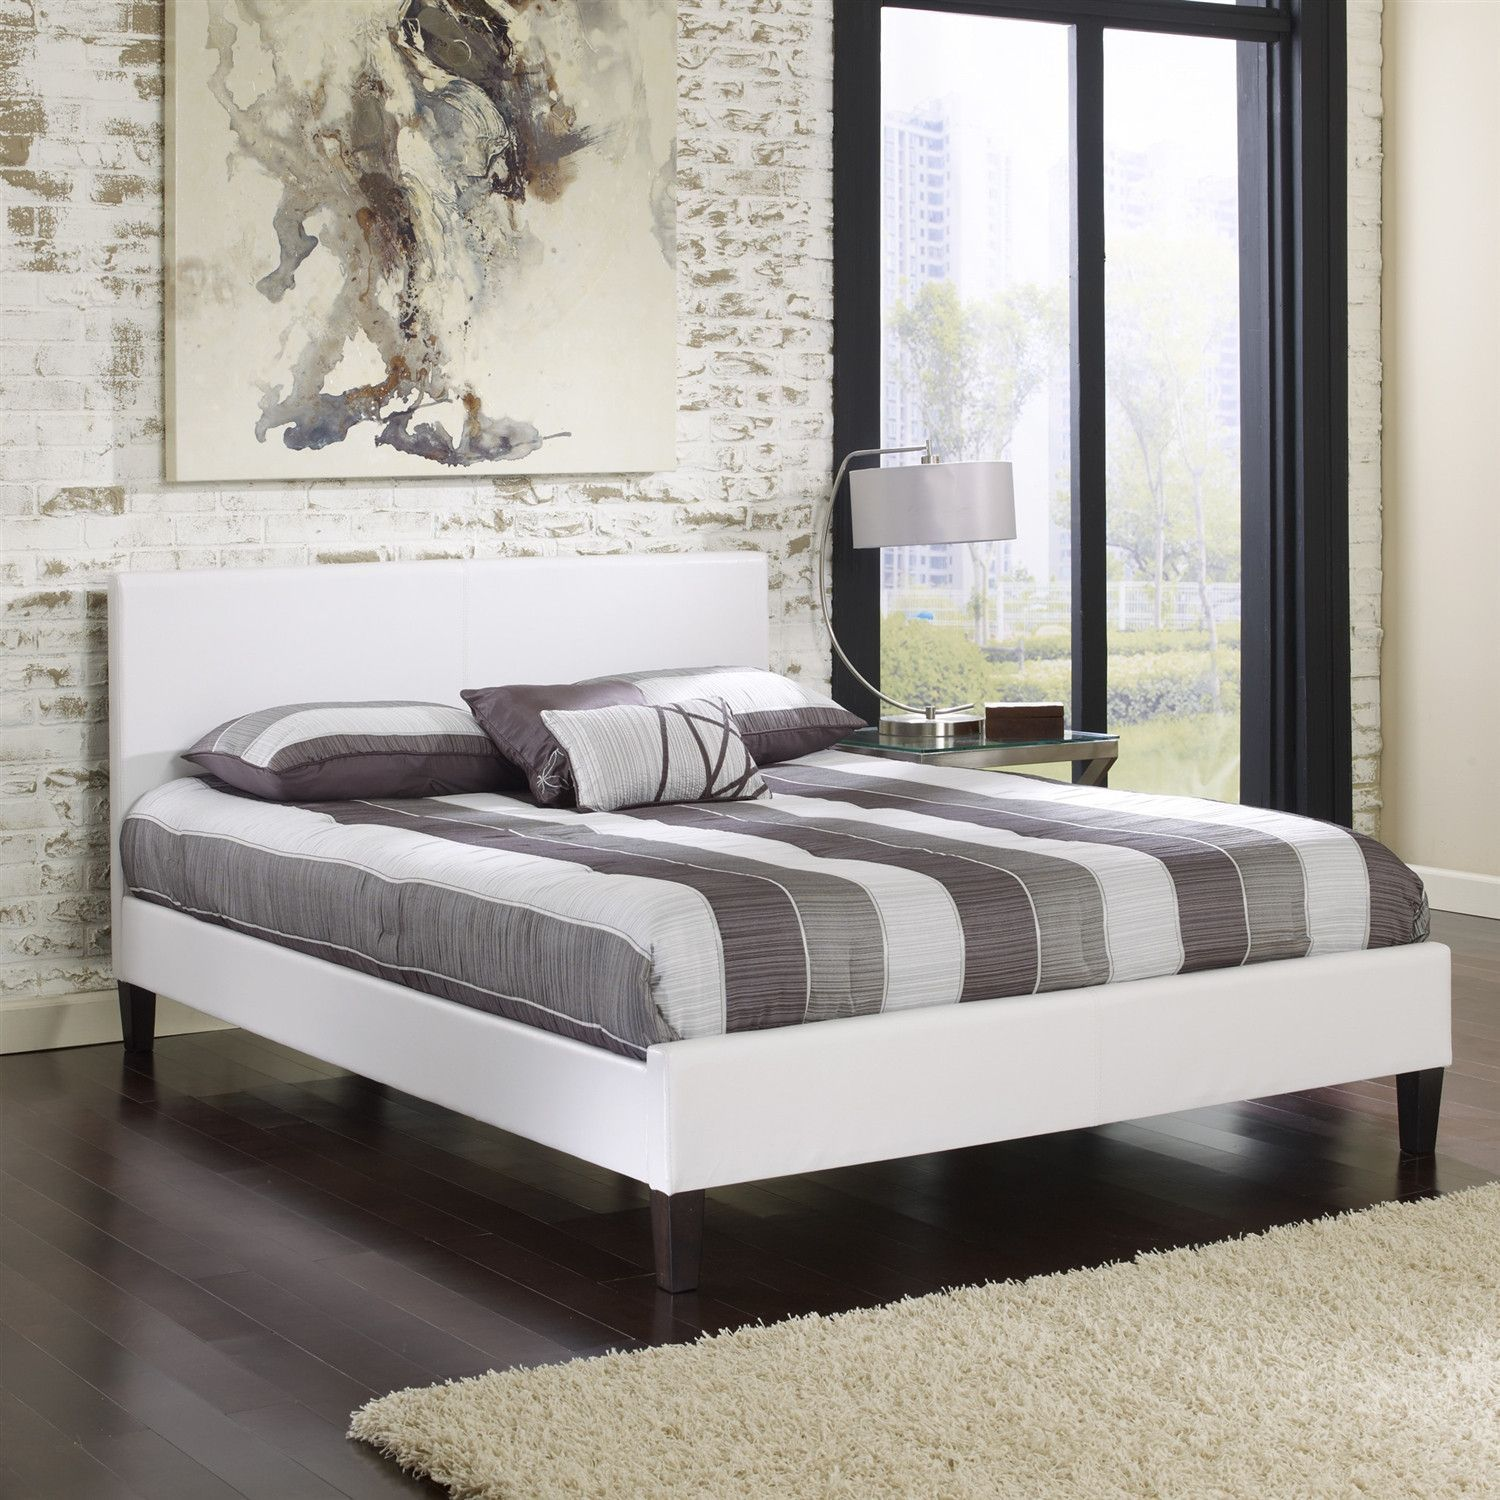 Queen size White Faux Leather Platform Bed Frame with Headboard ...